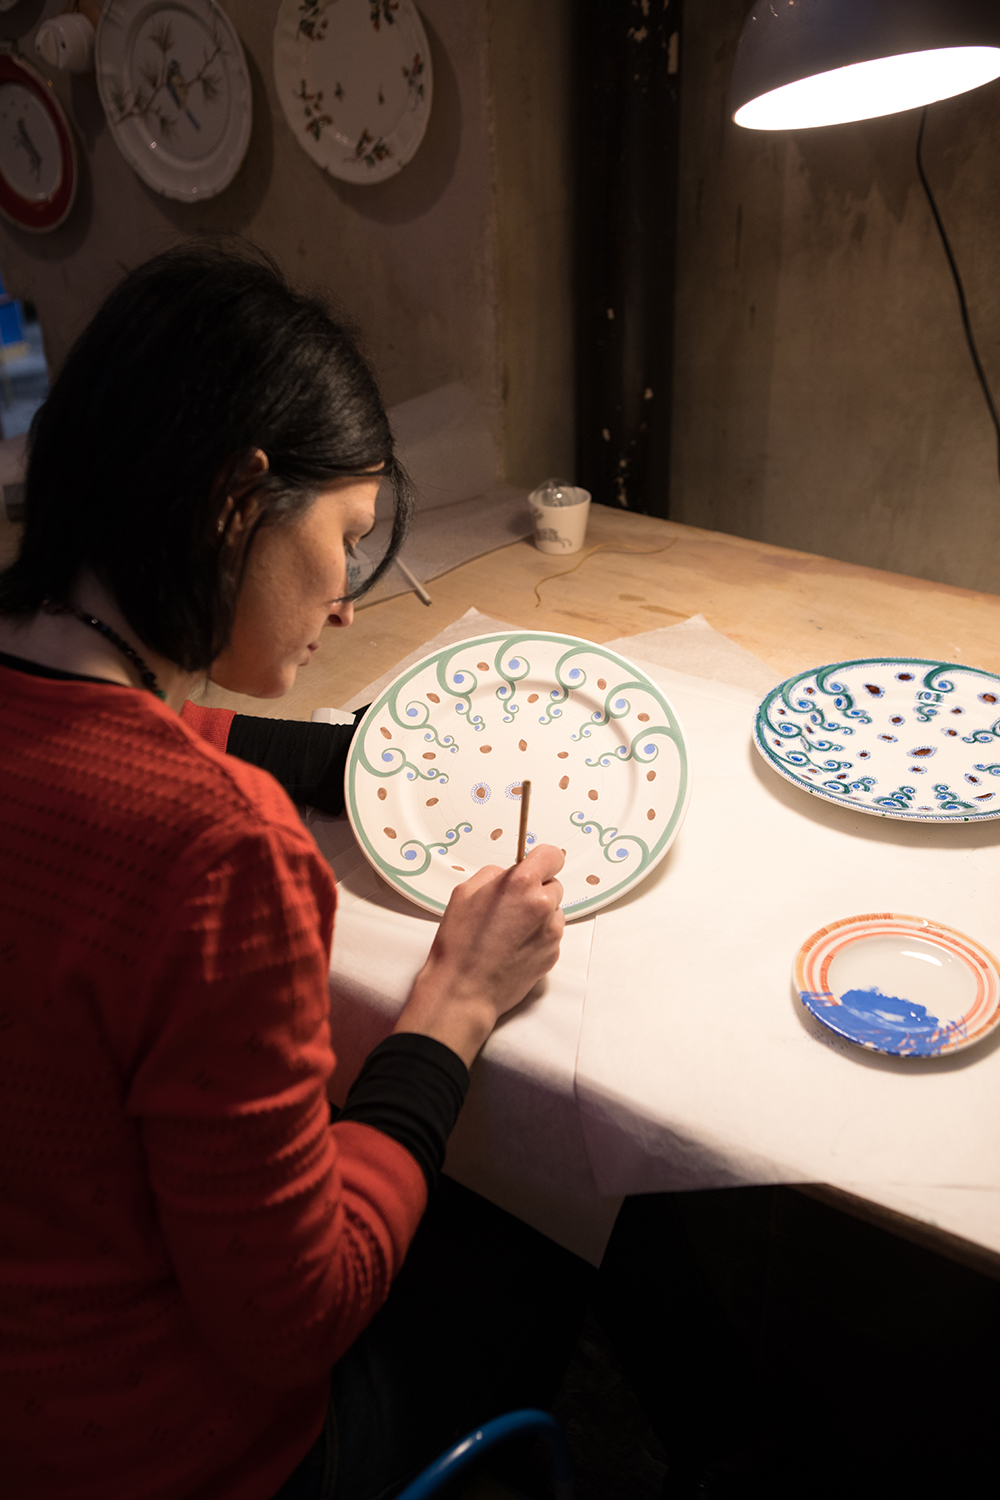 Paravincini ceramics professional profile portrait photography documentary Italy by Aimee Almstead.jpg